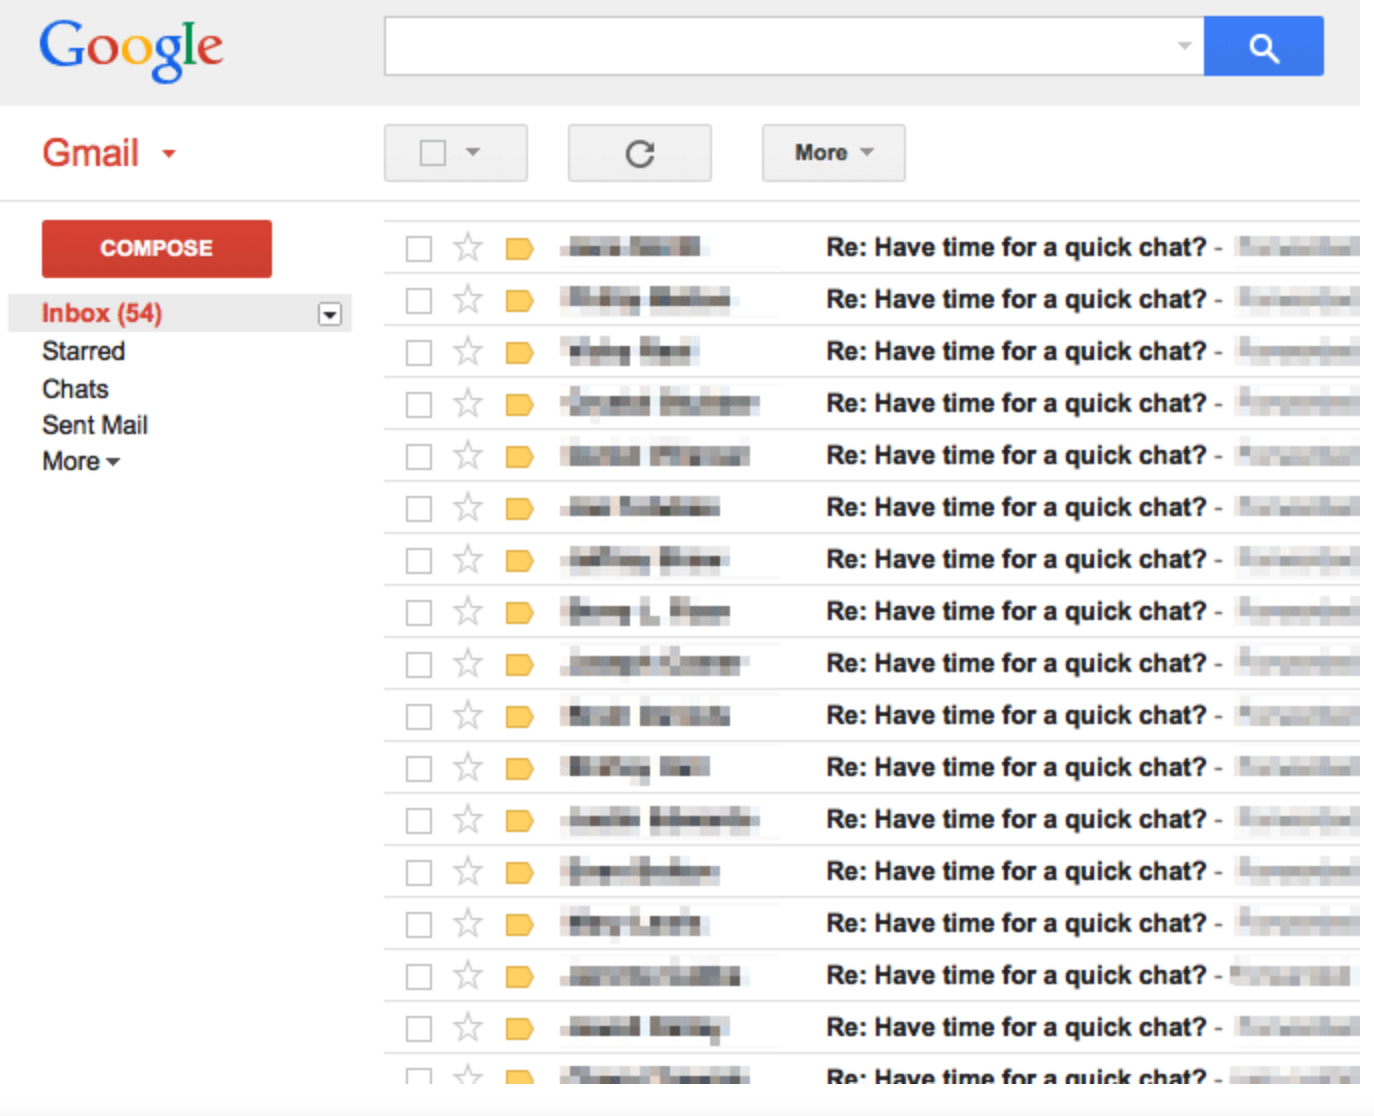 Screenshot showing Google inbox